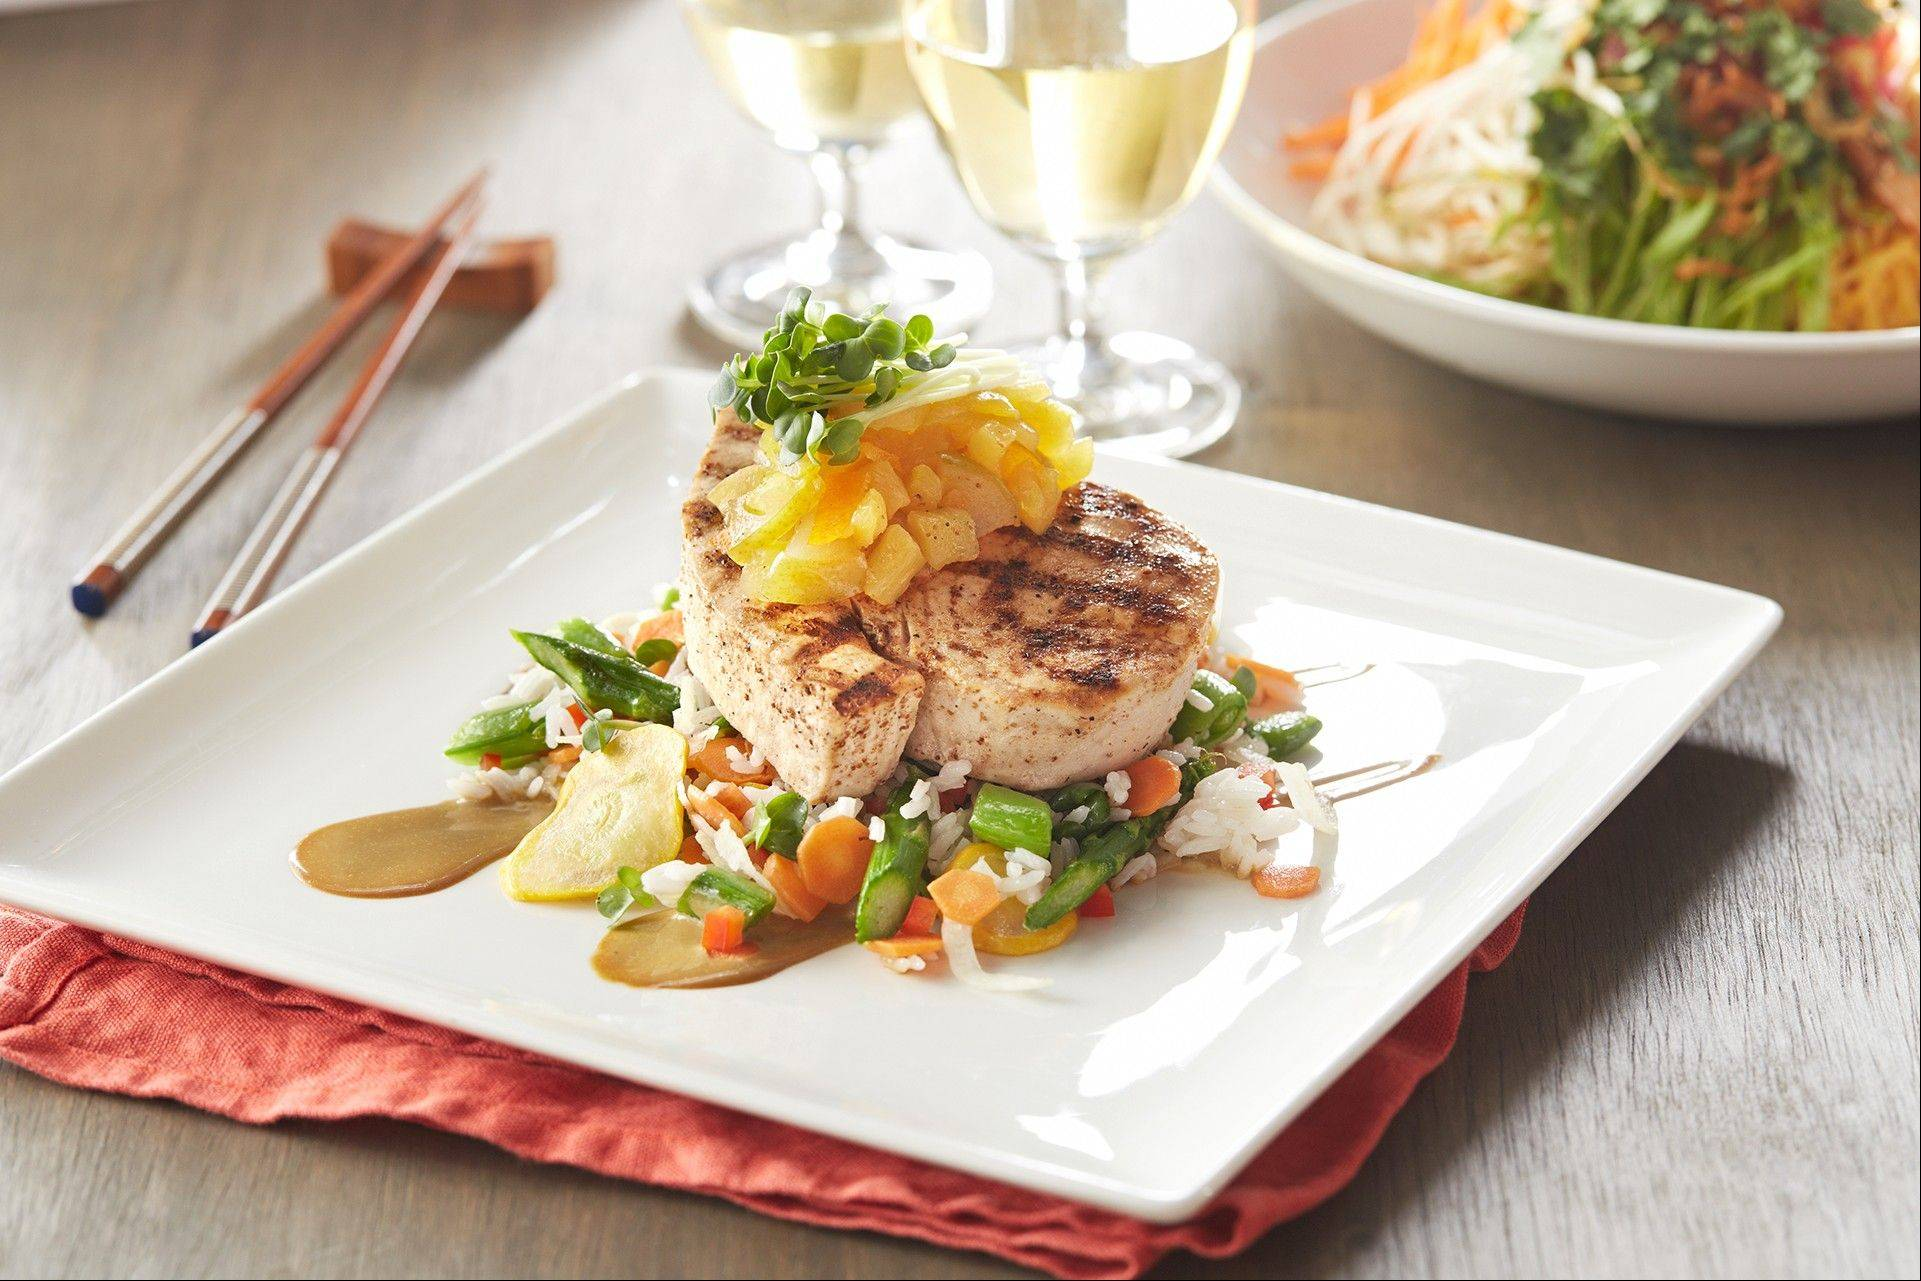 Taste summer in P.F. Chang's grilled pinepple-citrus swordfish with summer rice.